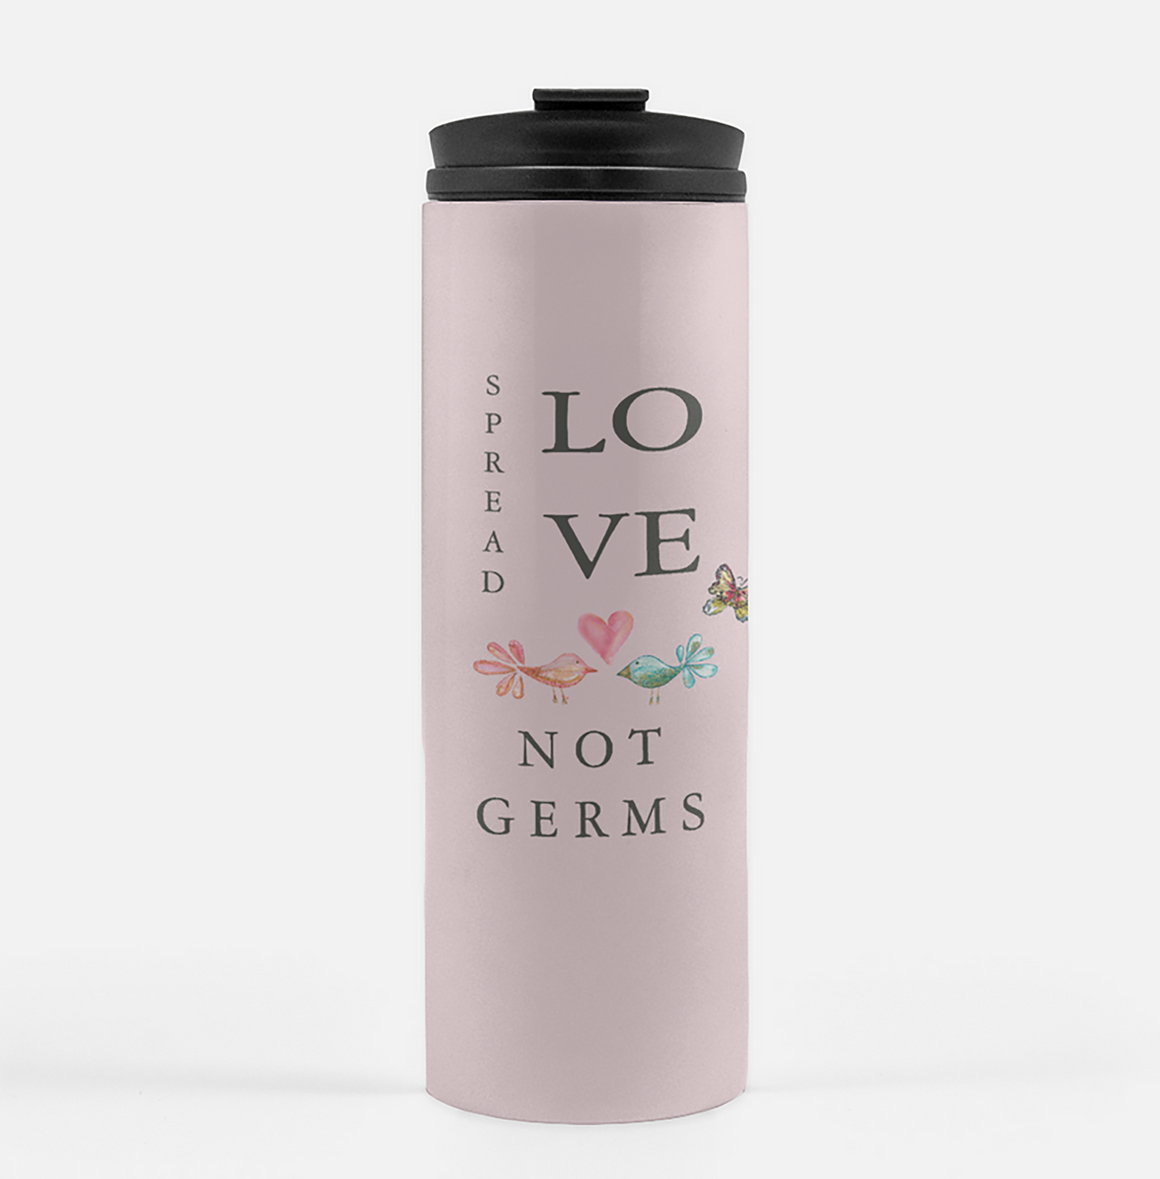 Spread Love Not Germs Pink Tumbler - Tumbler - Dreams After All